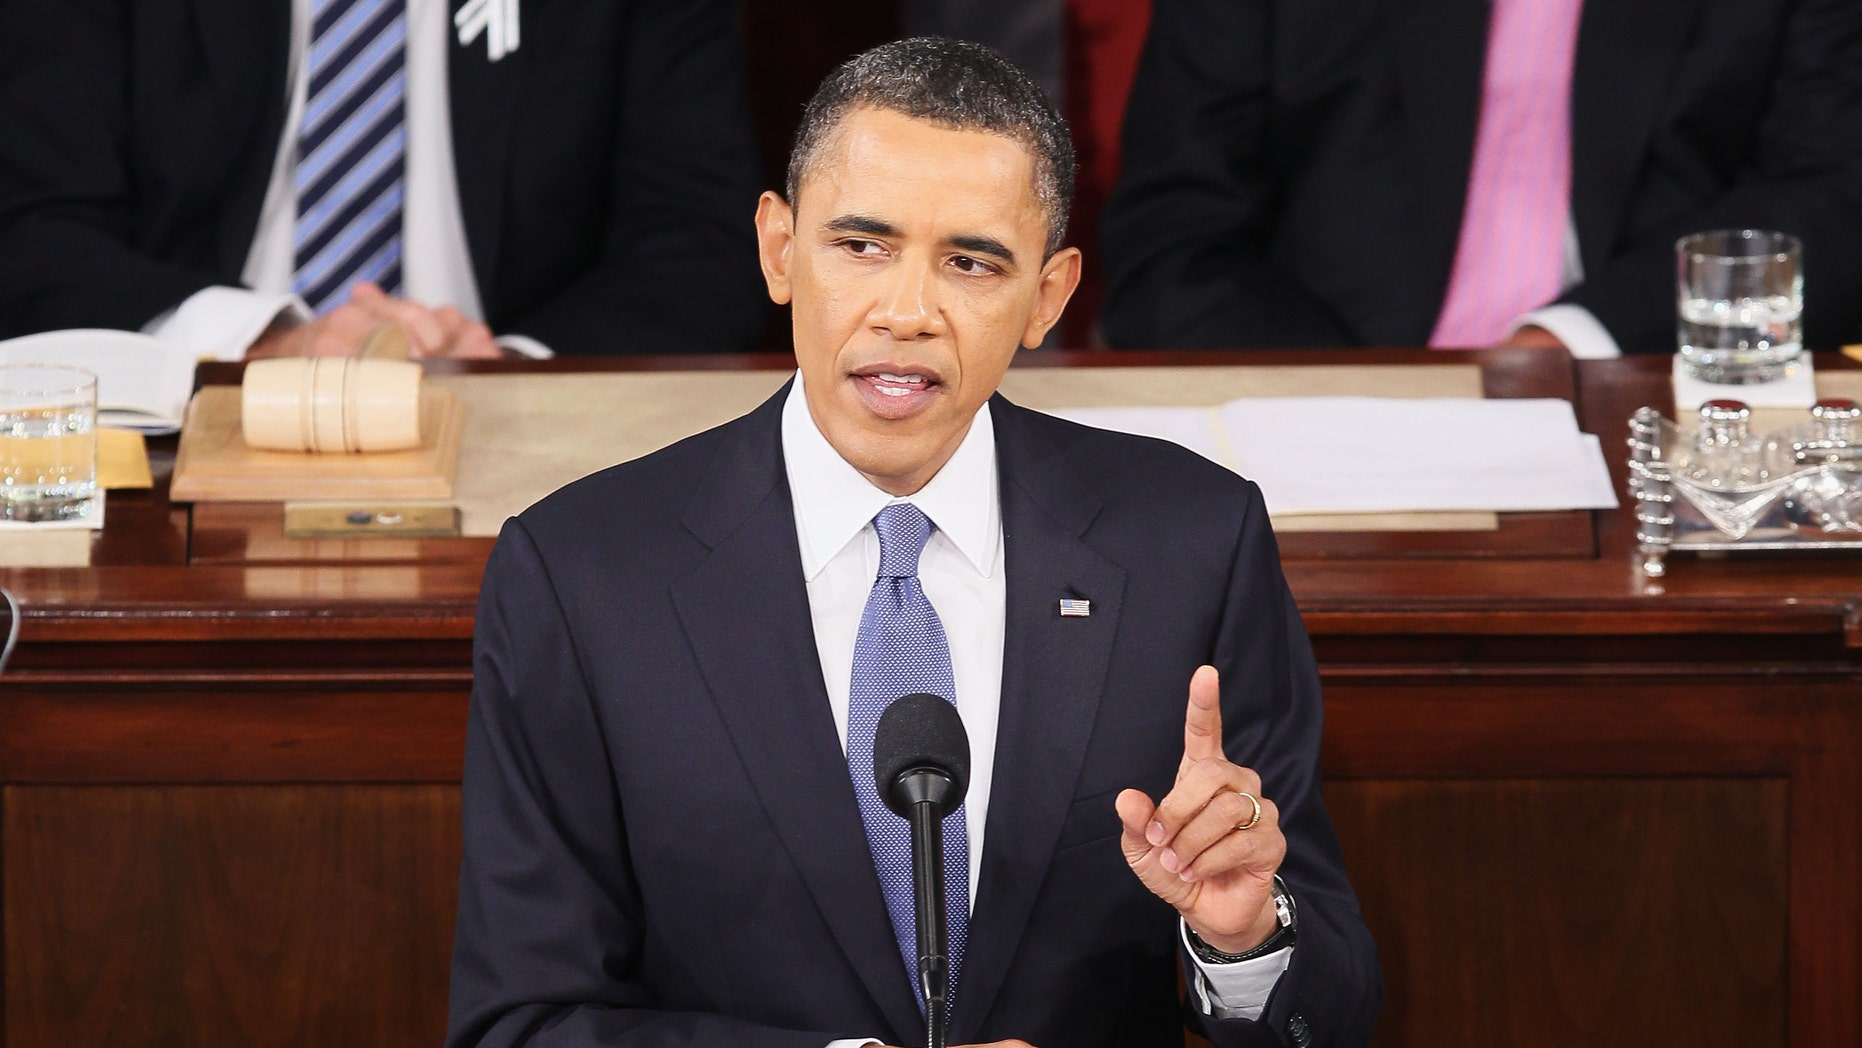 FILE U.S. President Barack Obama, flanked by Vice President Joe Biden (L) and Speaker of the House John Boehner (R-OH), addresses a Joint Session of Congress while delivering his State of the Union speech January 25, 2011 in Washington, DC. During his speech Obama was expected to focus on the U.S. economy and increasing education and infrastructure funding while proposing a three-year partial freeze of domestic programs and $78 billion in military spending cuts.  (Photo by Alex Wong/Getty Images) *** Local Caption ***